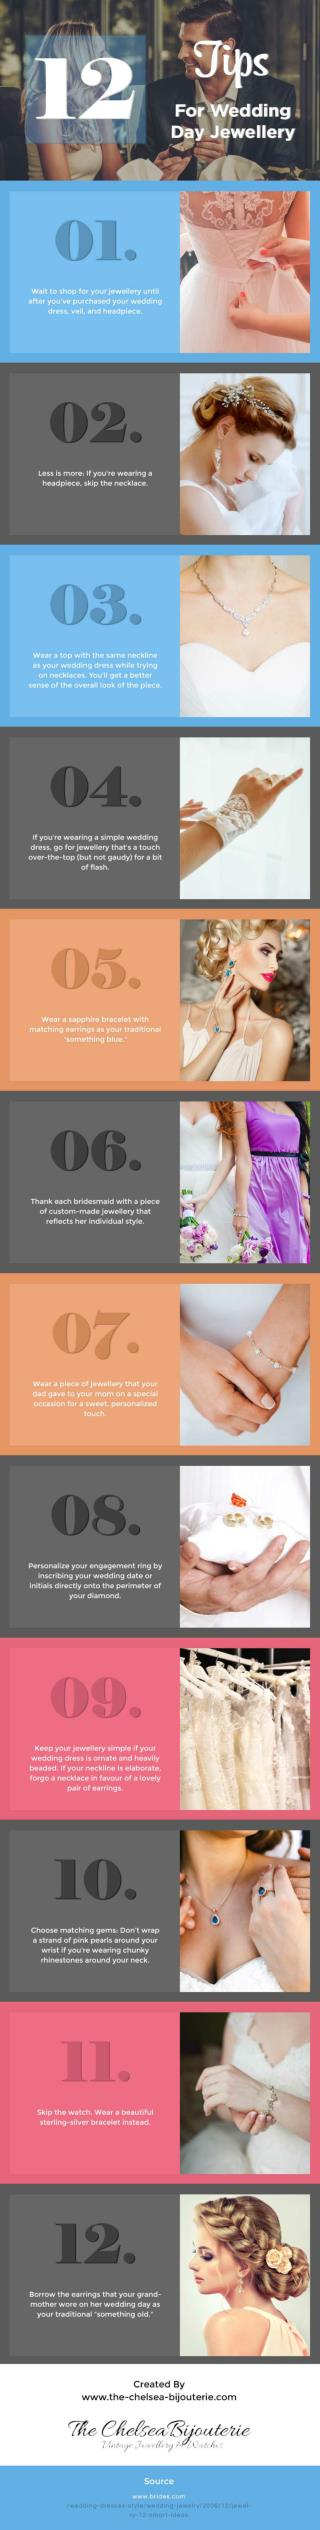 12 Tips For Wedding Day Jewellery